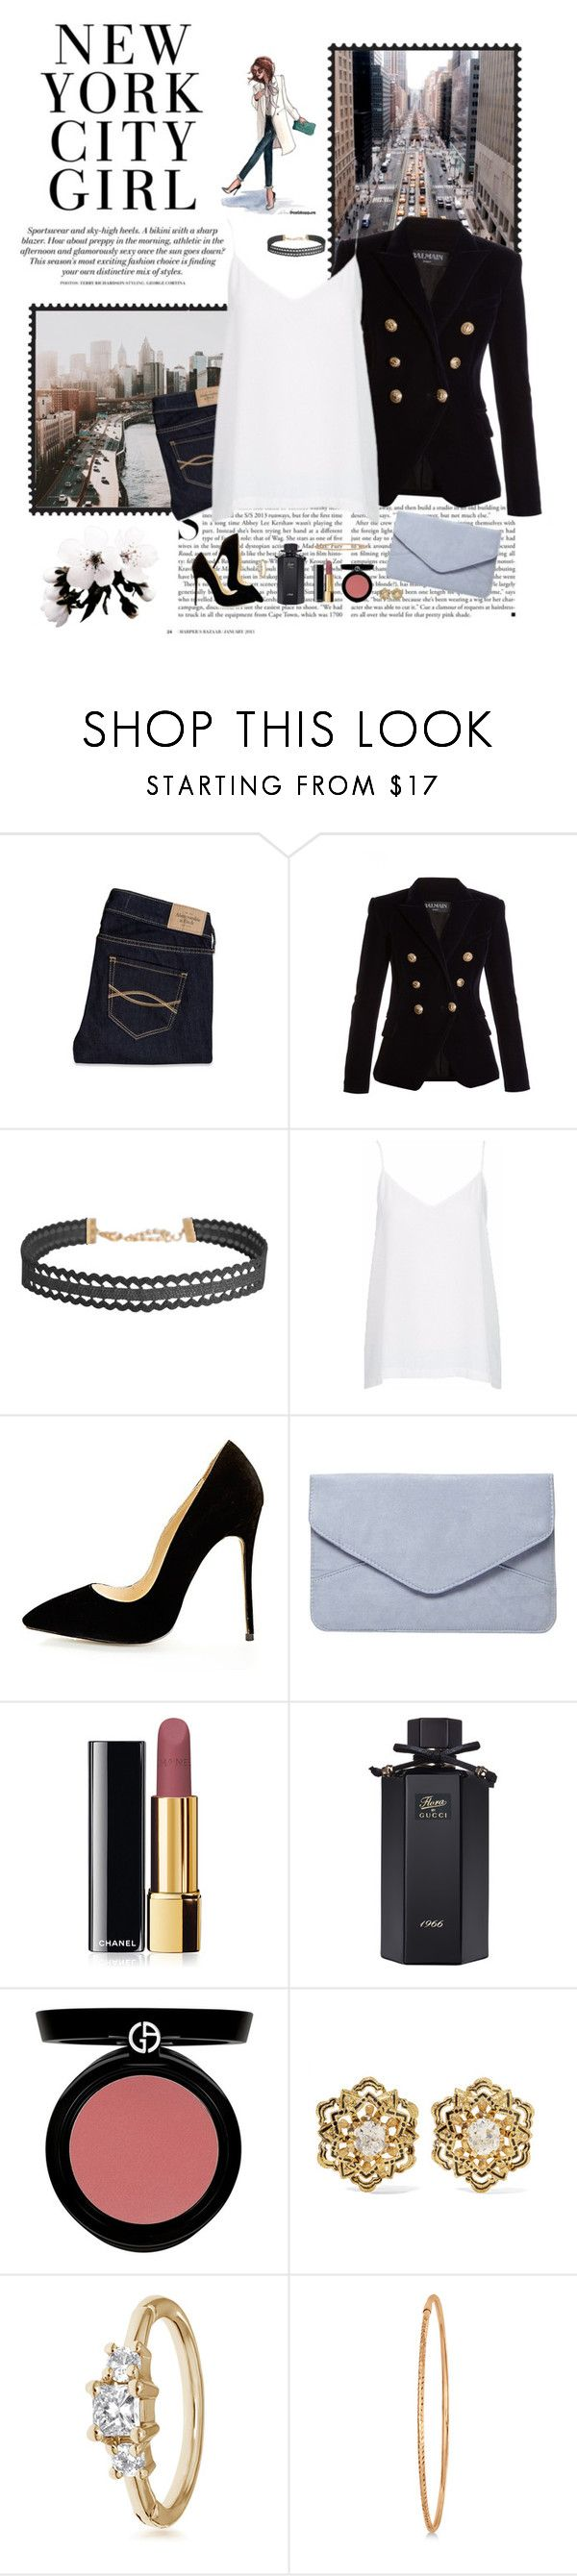 """""""New York City Dreaming ♥ ♥"""" by allweknowisfalling ❤ liked on Polyvore featuring Kershaw, Paul Frank, Abercrombie & Fitch, Balmain, Humble Chic, Storm & Marie, Dorothy Perkins, Chanel, Gucci and Giorgio Armani"""